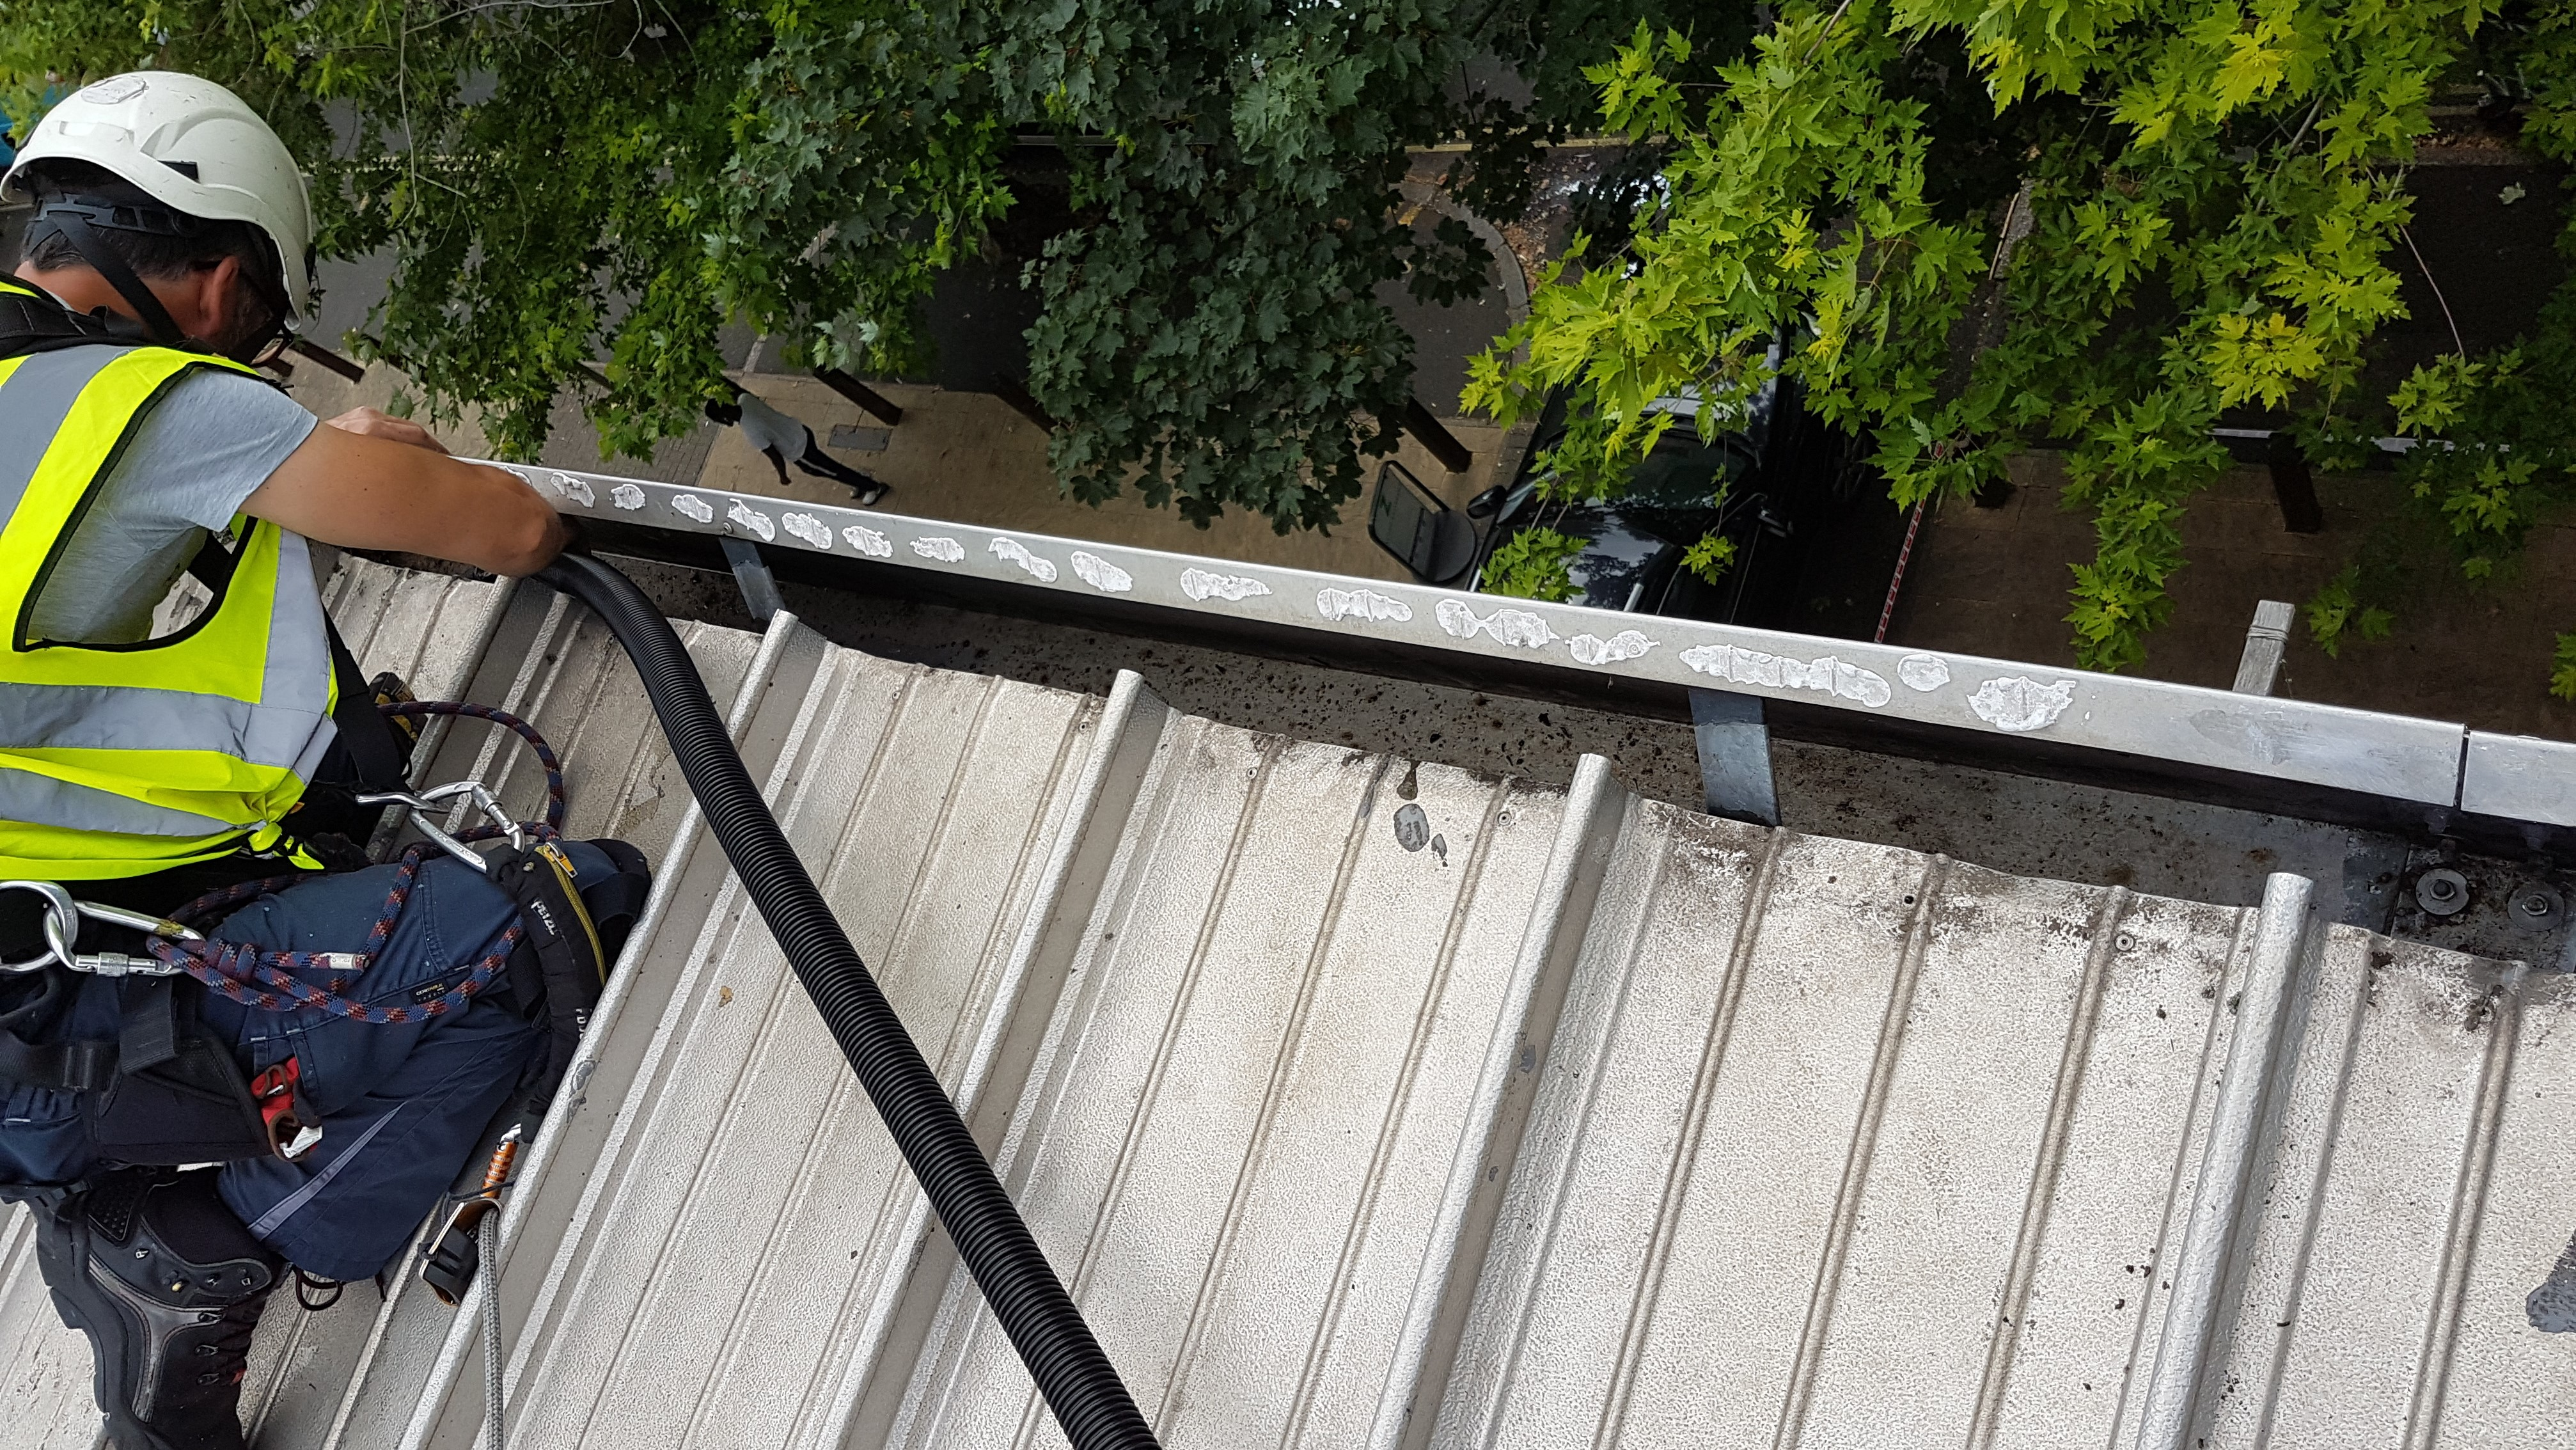 gutter cleaning rope access